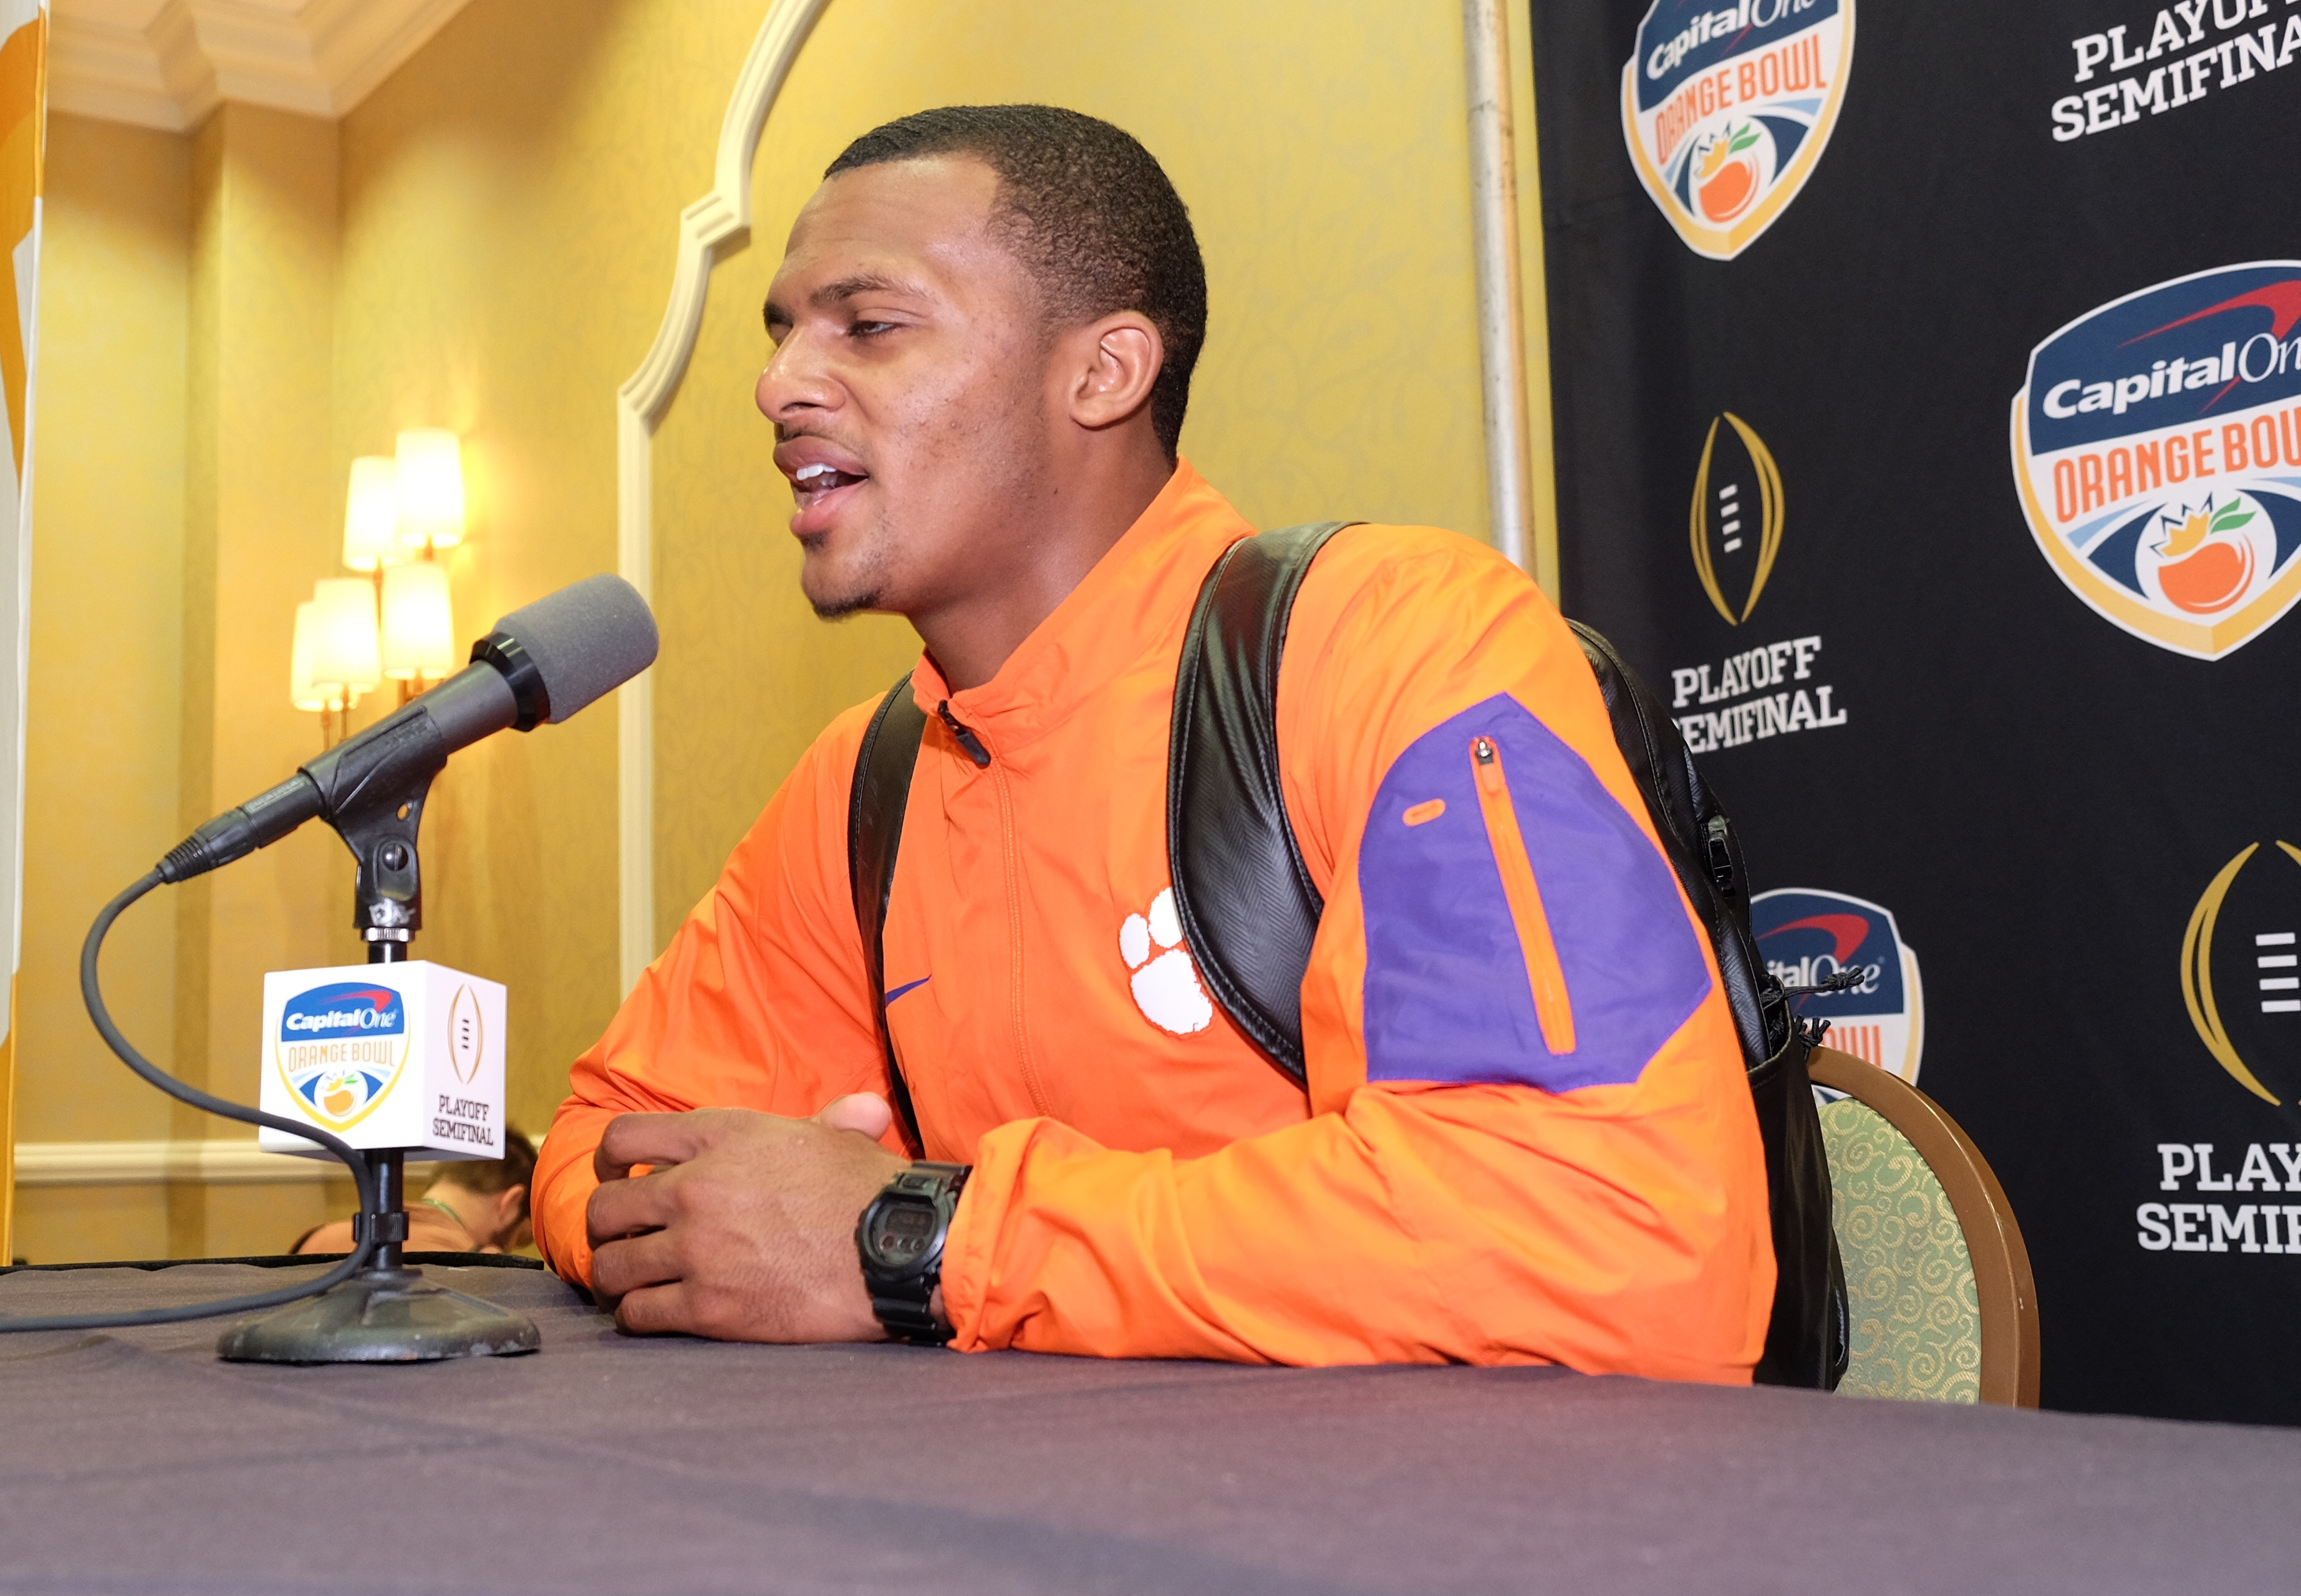 Clemson quarterback Deshaun Watson speaks to the media at a press conference in Fort Lauderdale, Fla., Sunday, Dec. 27, 2015. Oklahoma will play Clemson in the Orange Bowl on New Year's Eve. (AP Photo/Gaston De Cardenas)